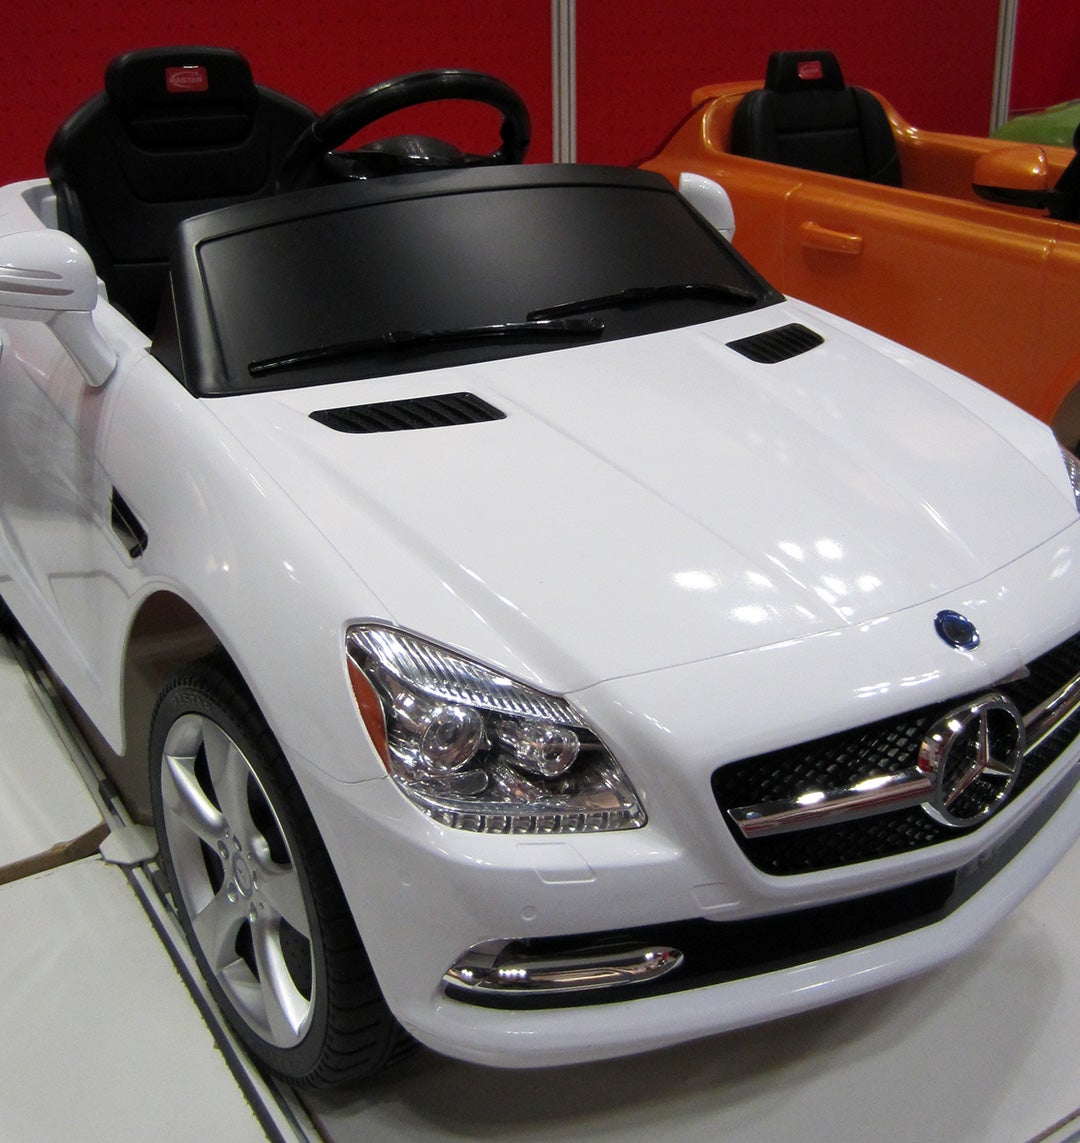 Now Your Kid Can Afford A Cooler Car Than You